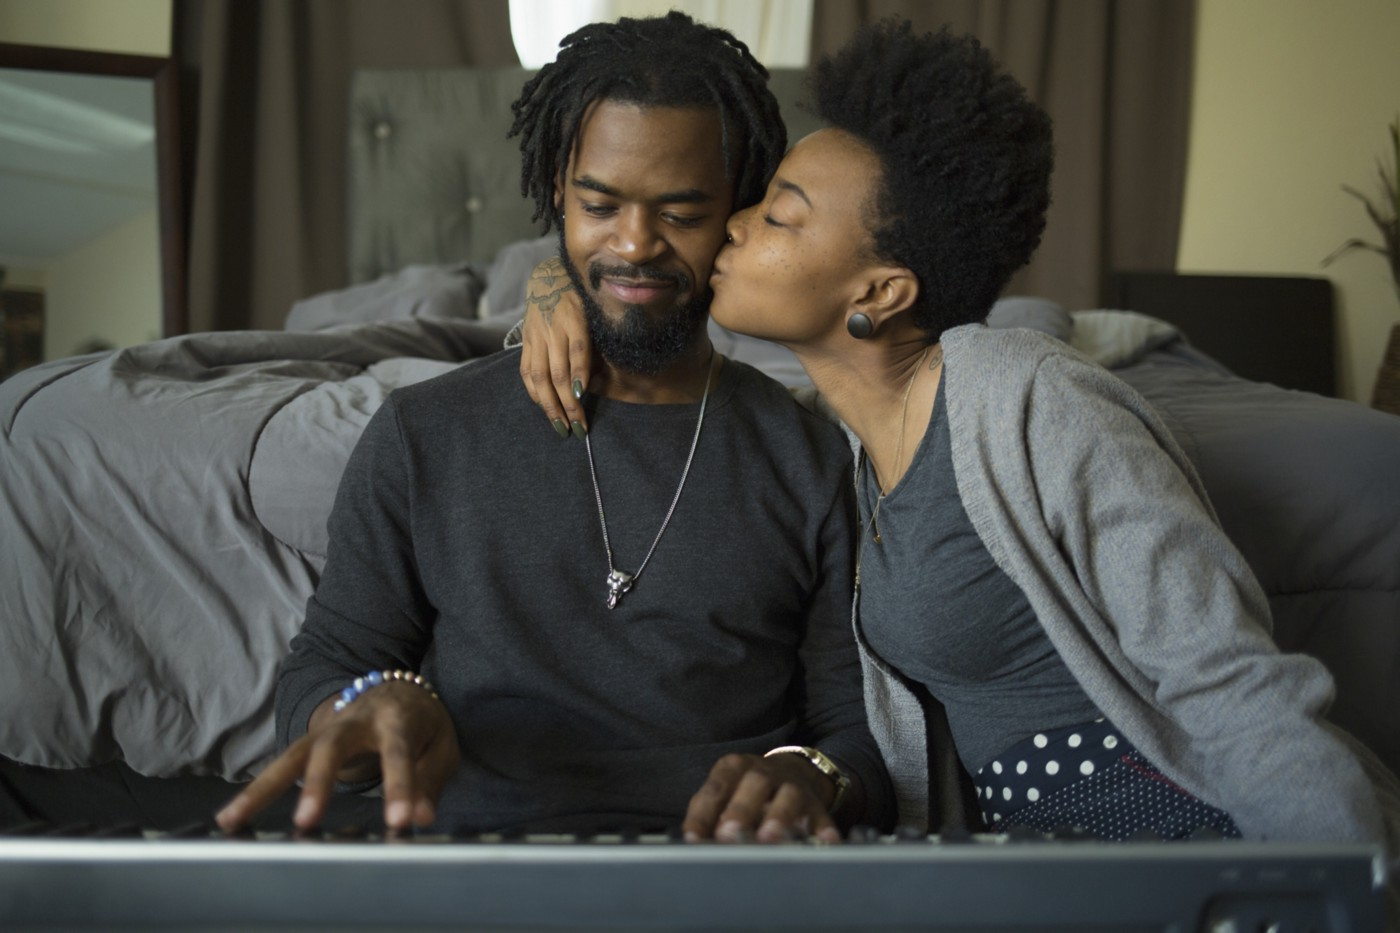 A photo of a black couple. He is playing keyboard and she kisses him on the cheek.